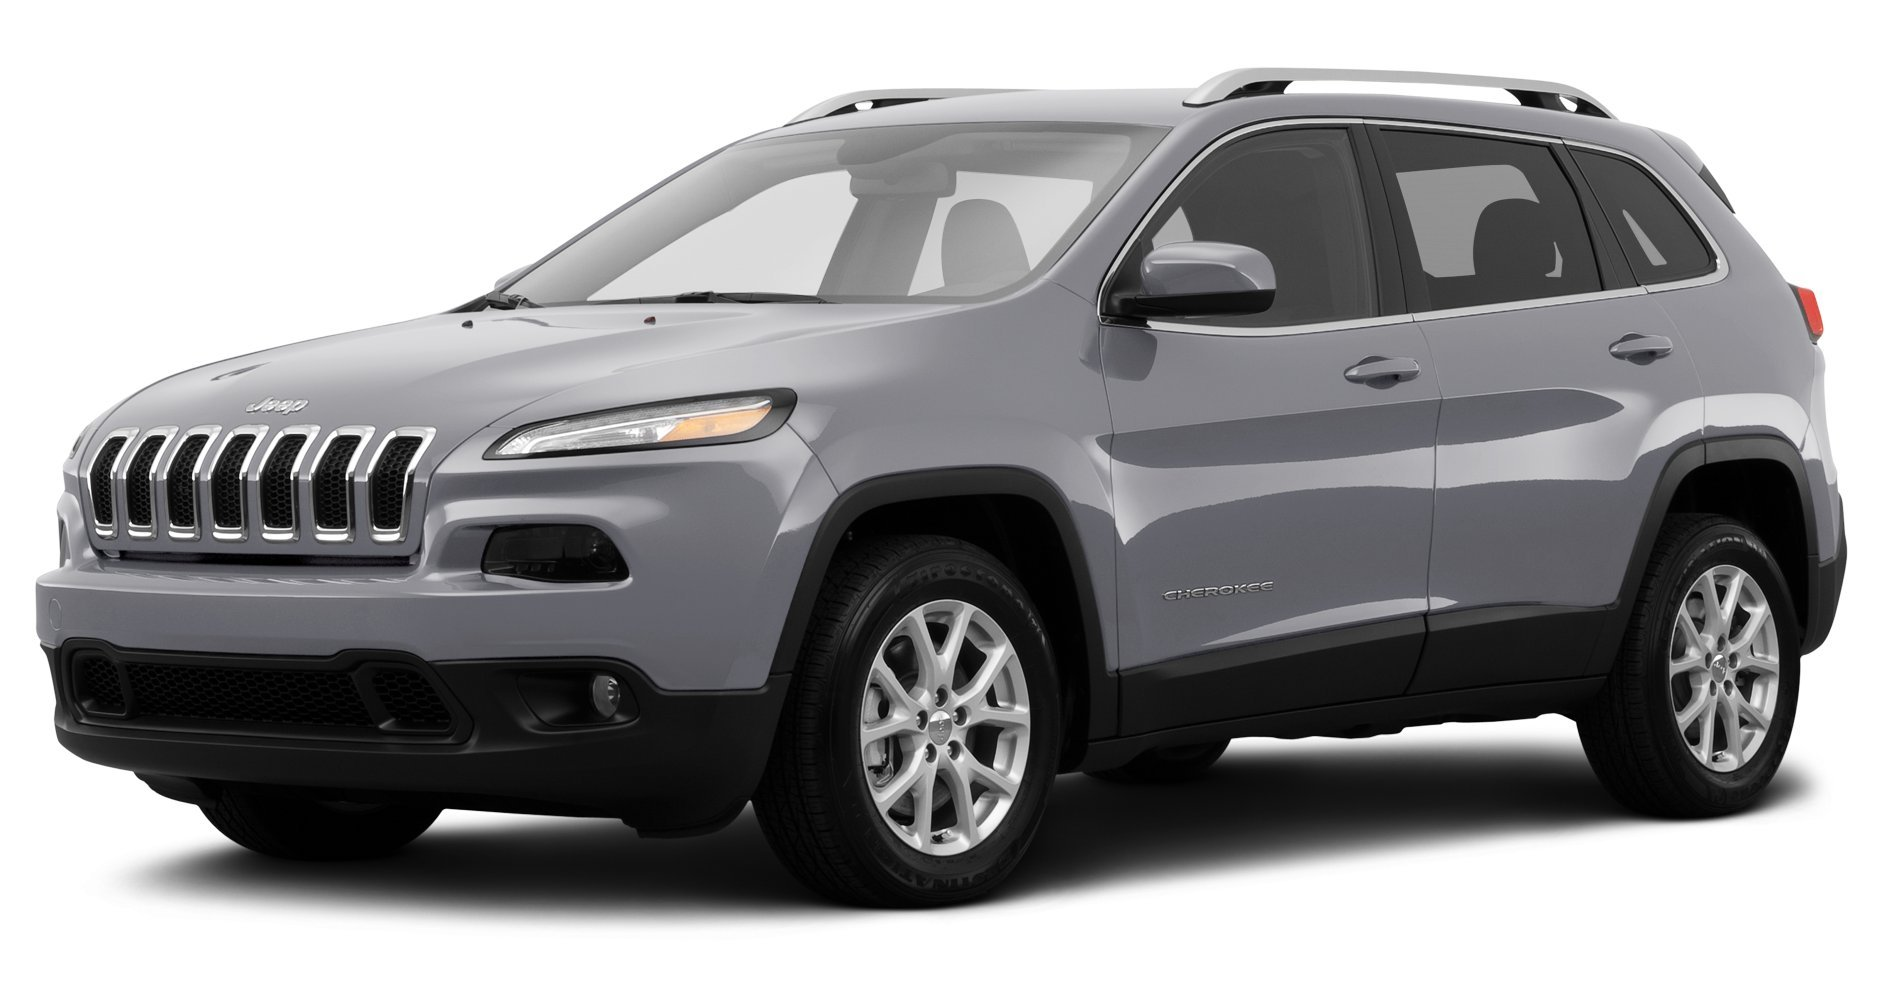 2015 jeep cherokee reviews images and specs vehicles. Black Bedroom Furniture Sets. Home Design Ideas